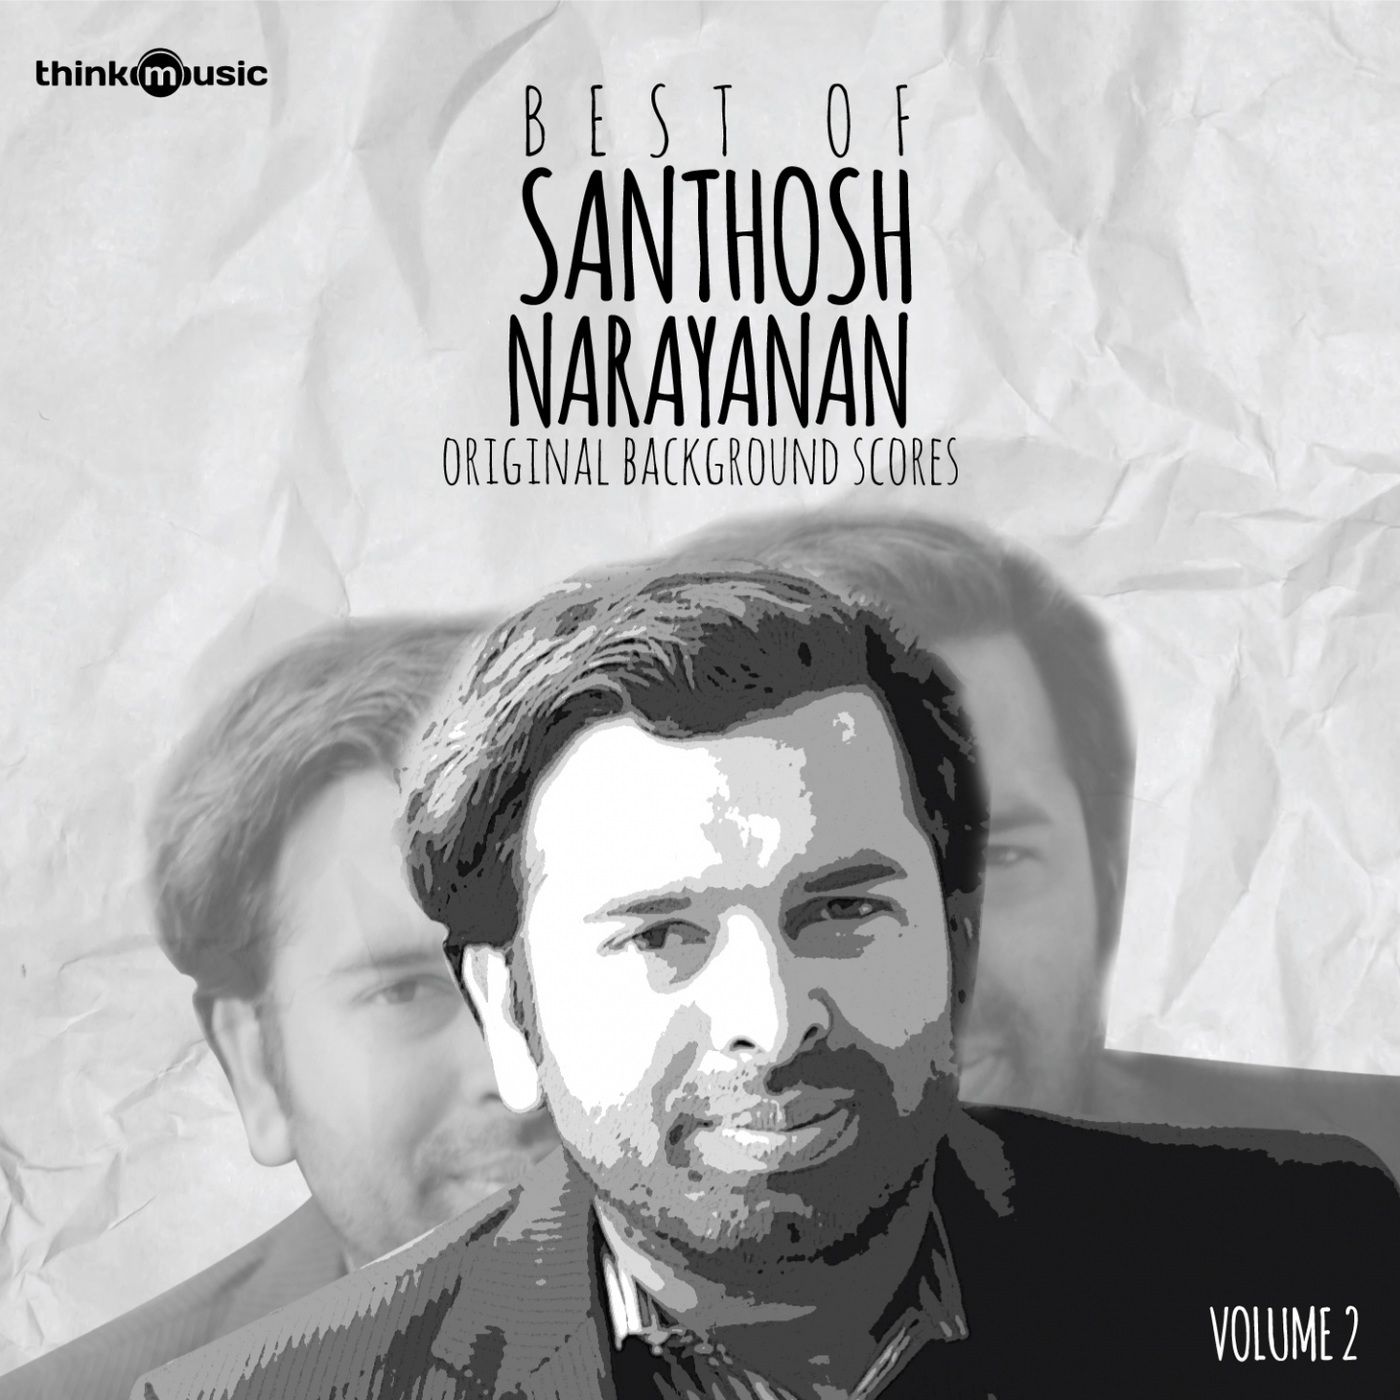 Best of Santhosh Narayanan, Vol. 2 (Background Scores) FLAC Songs